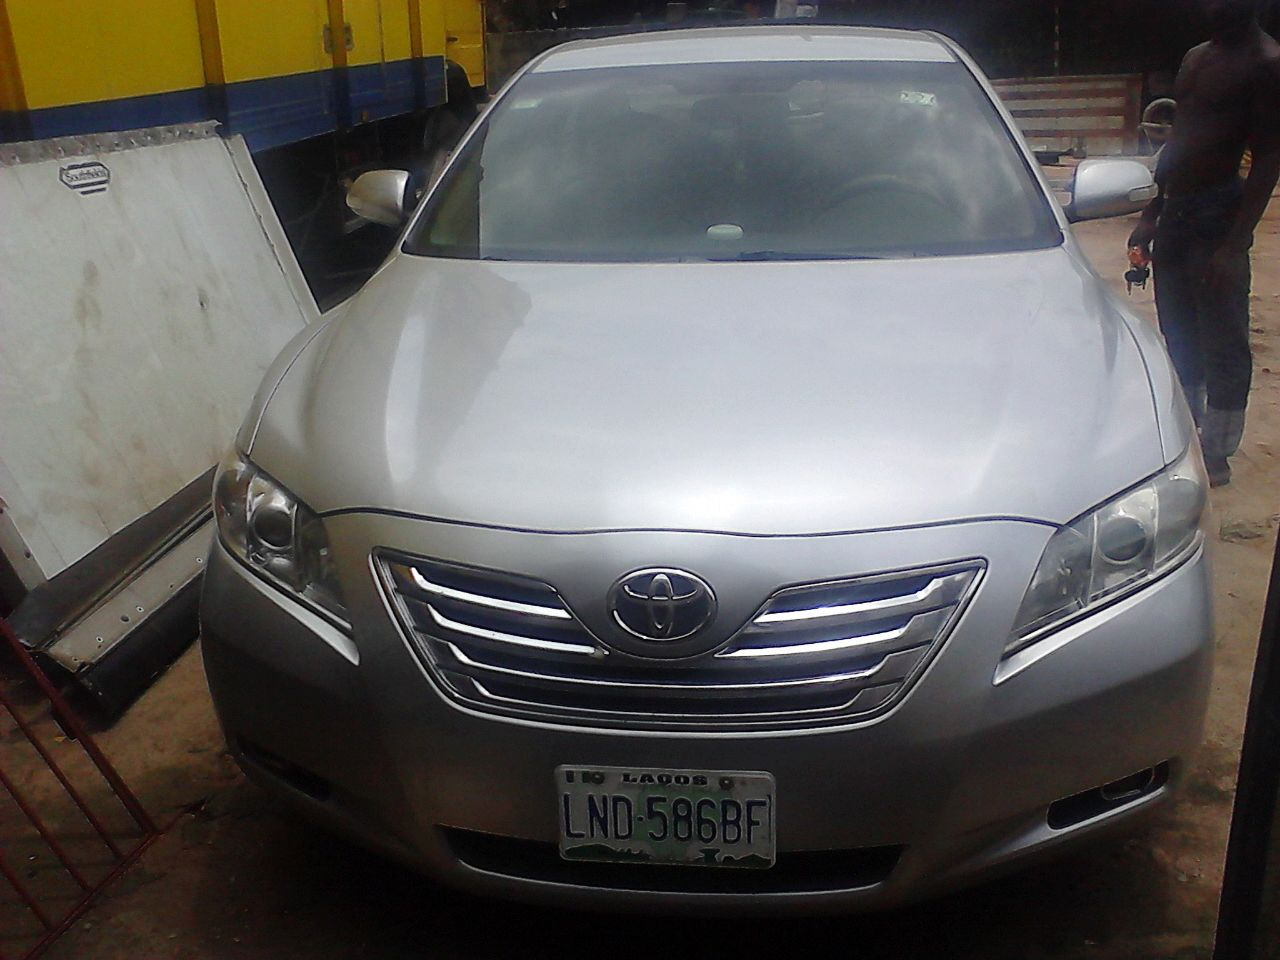 brand new camry price grand avanza second months used 2008 muzzle xle with navigation bought